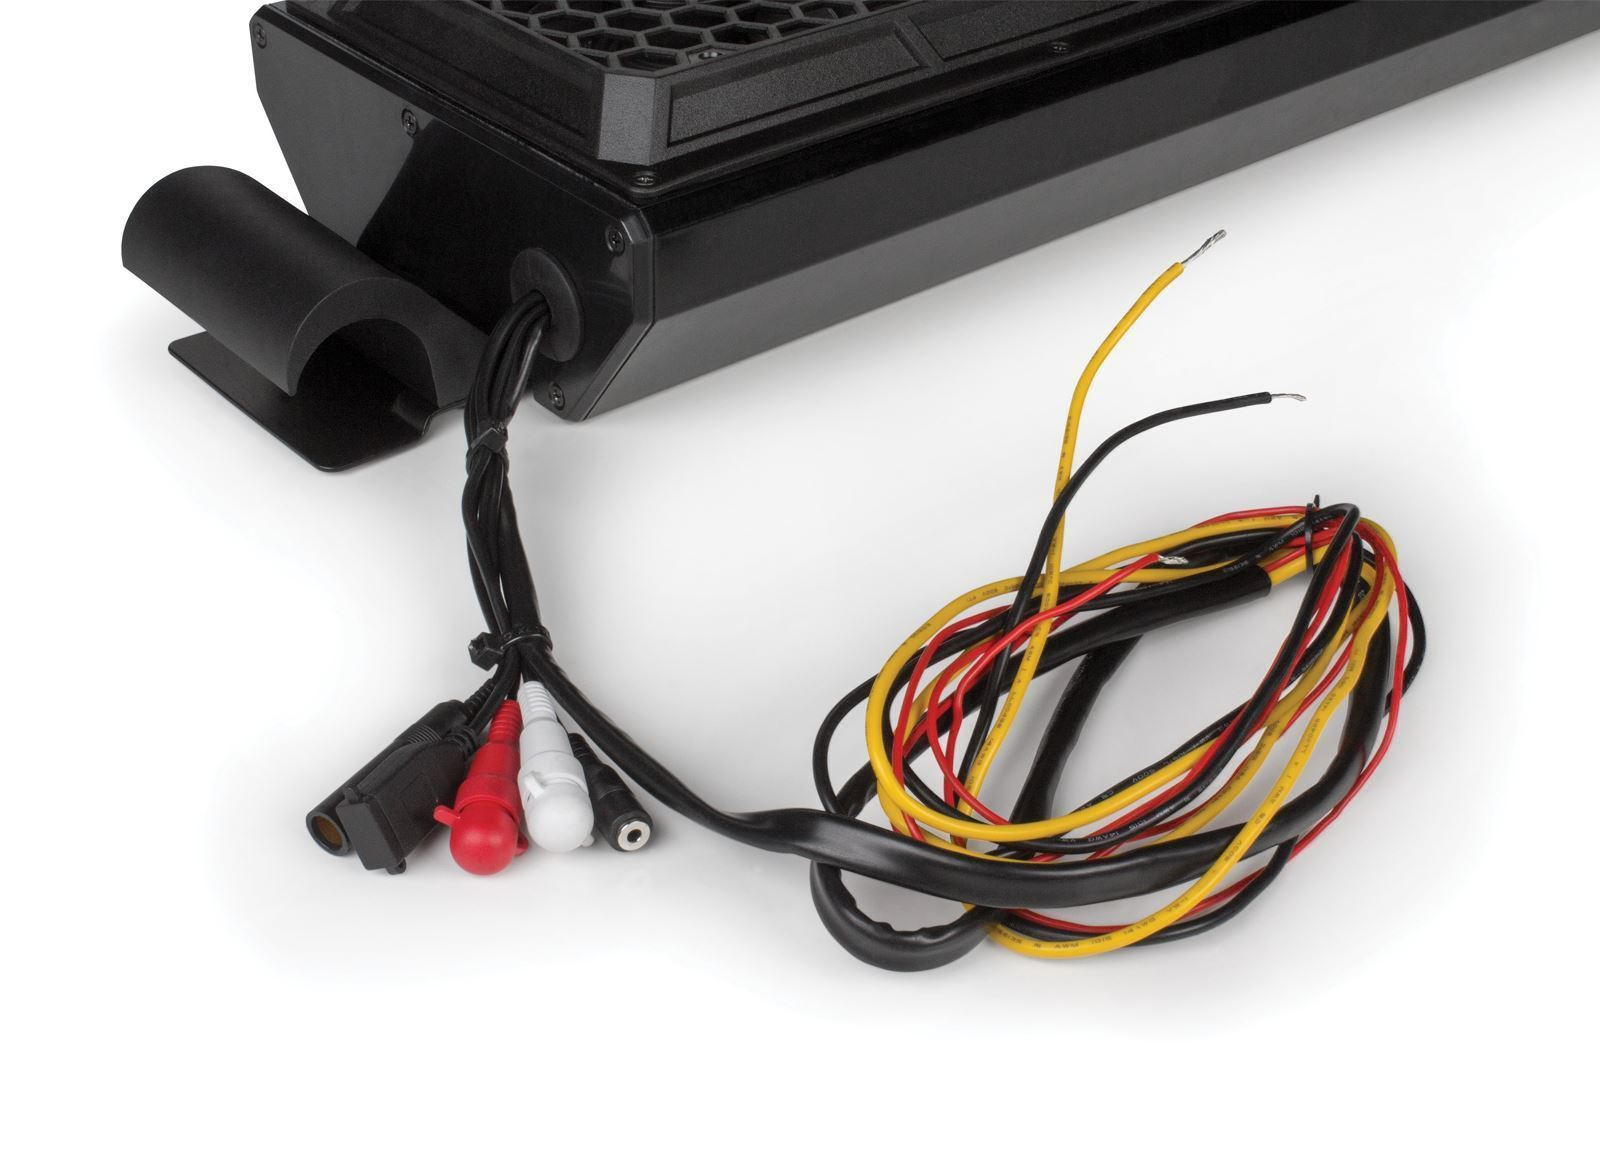 Honda Pioneer Wiring Harness Trusted Diagrams Cps Pioneerboakit Bluetooth Audio System For With